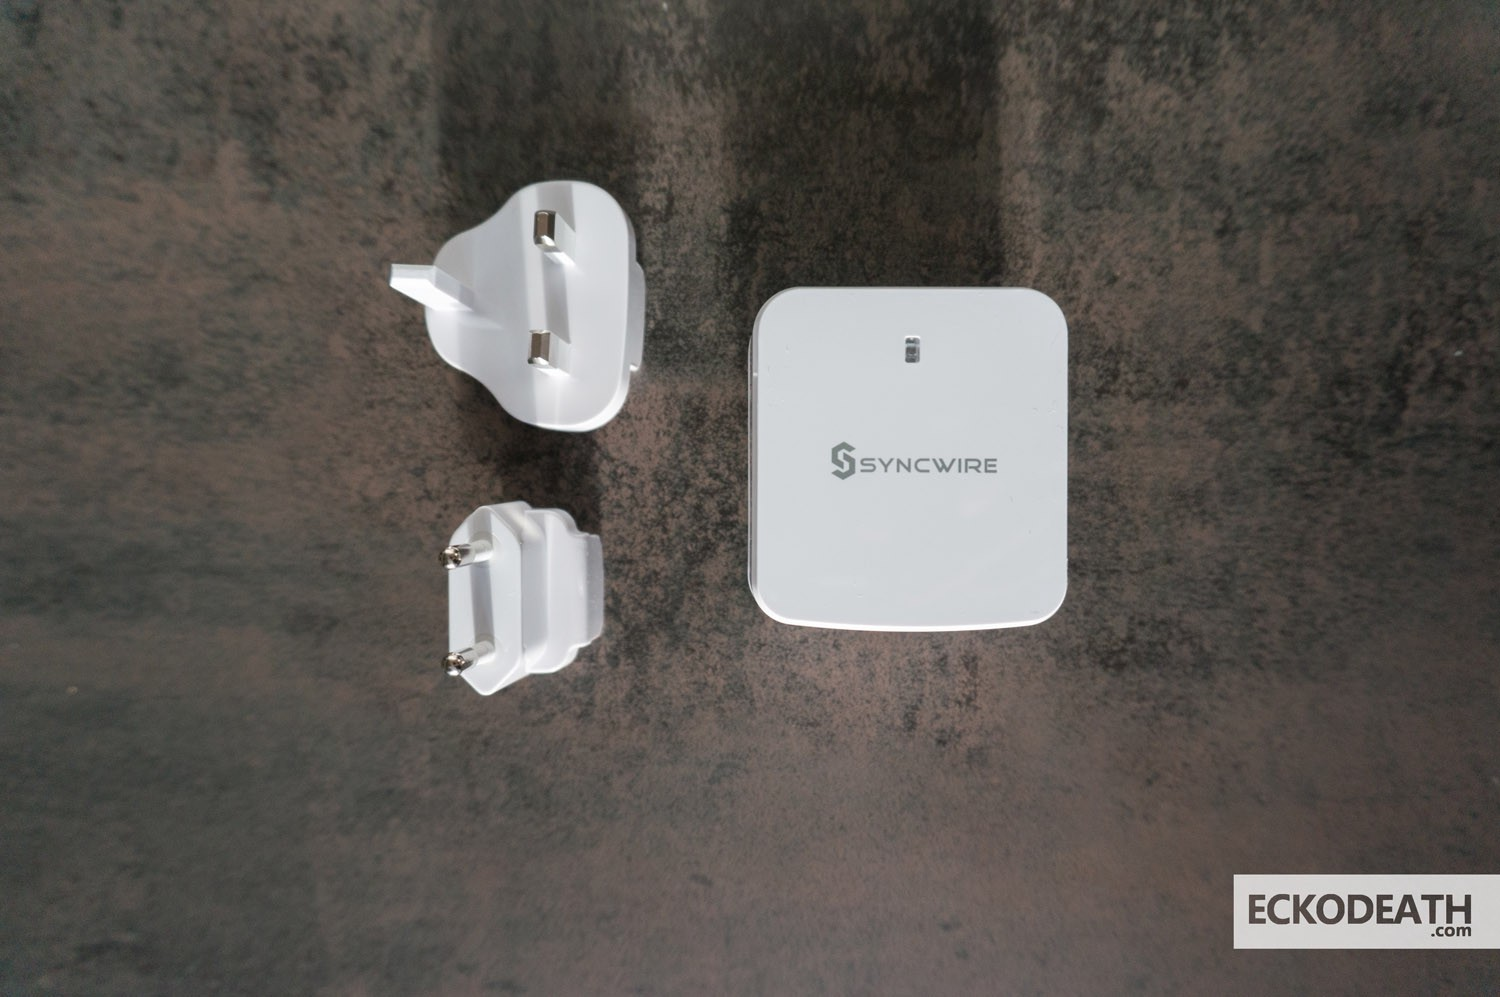 syncwire-chargeur-secteur-mural-unboxing-3